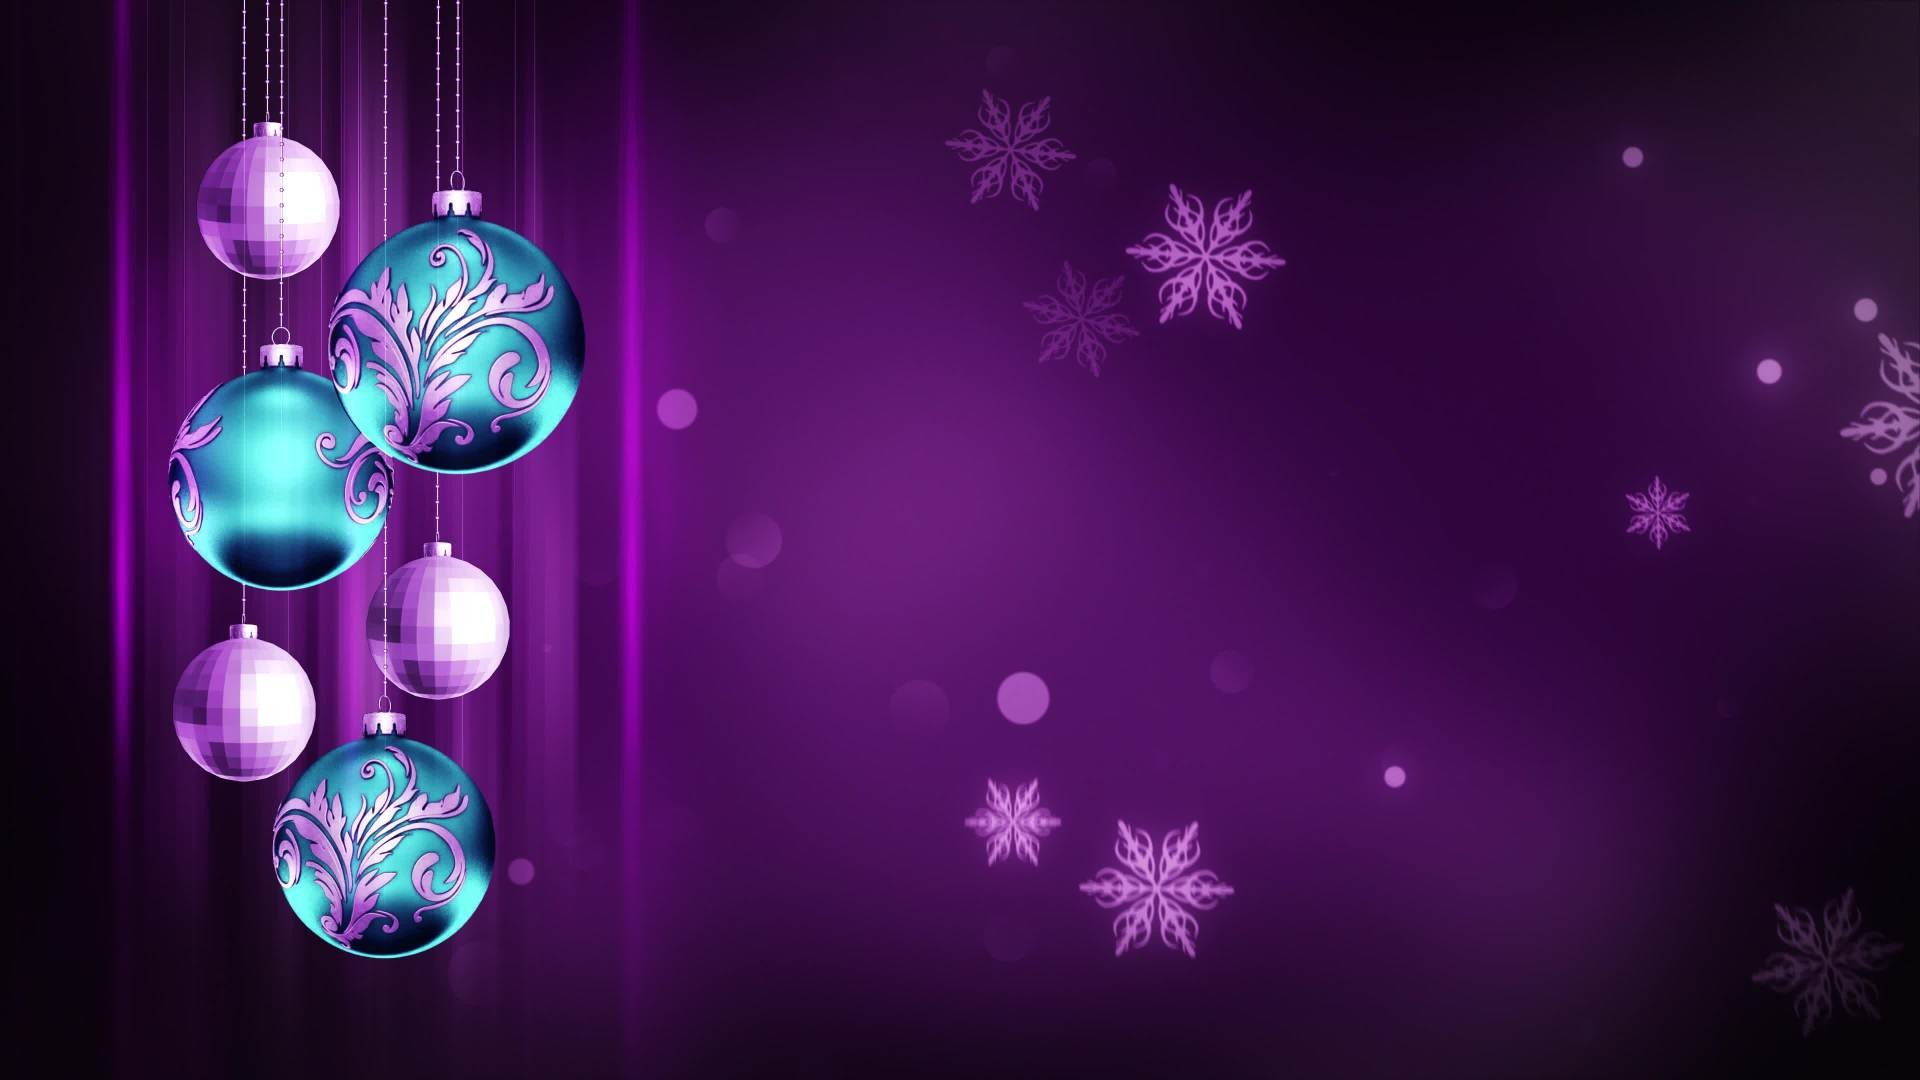 1920x1080 Blue & Deep Purple Ornaments 4K Christmas Motion Background Loop - Free HD  Video Clips & Stock Video Footage at Videezy!